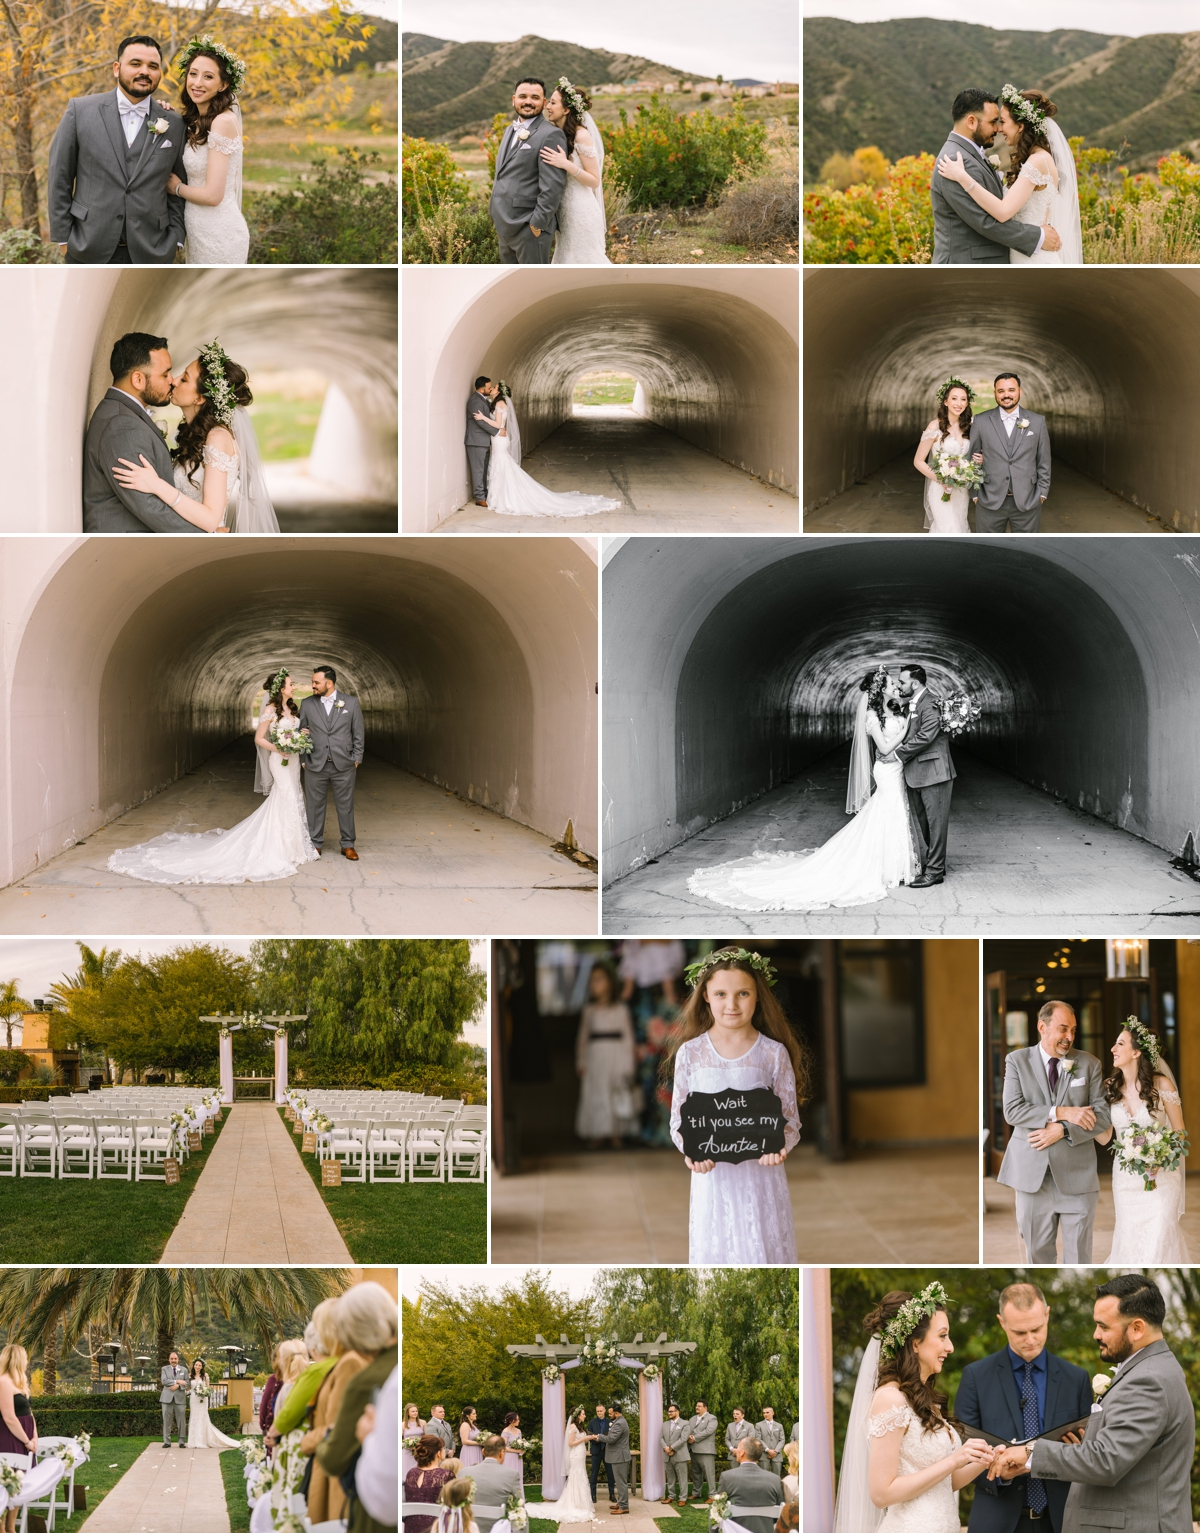 affordable-wedding-photography-orange-county-wedgewood-at-the-retreatwedding-shy-heart-studios-2